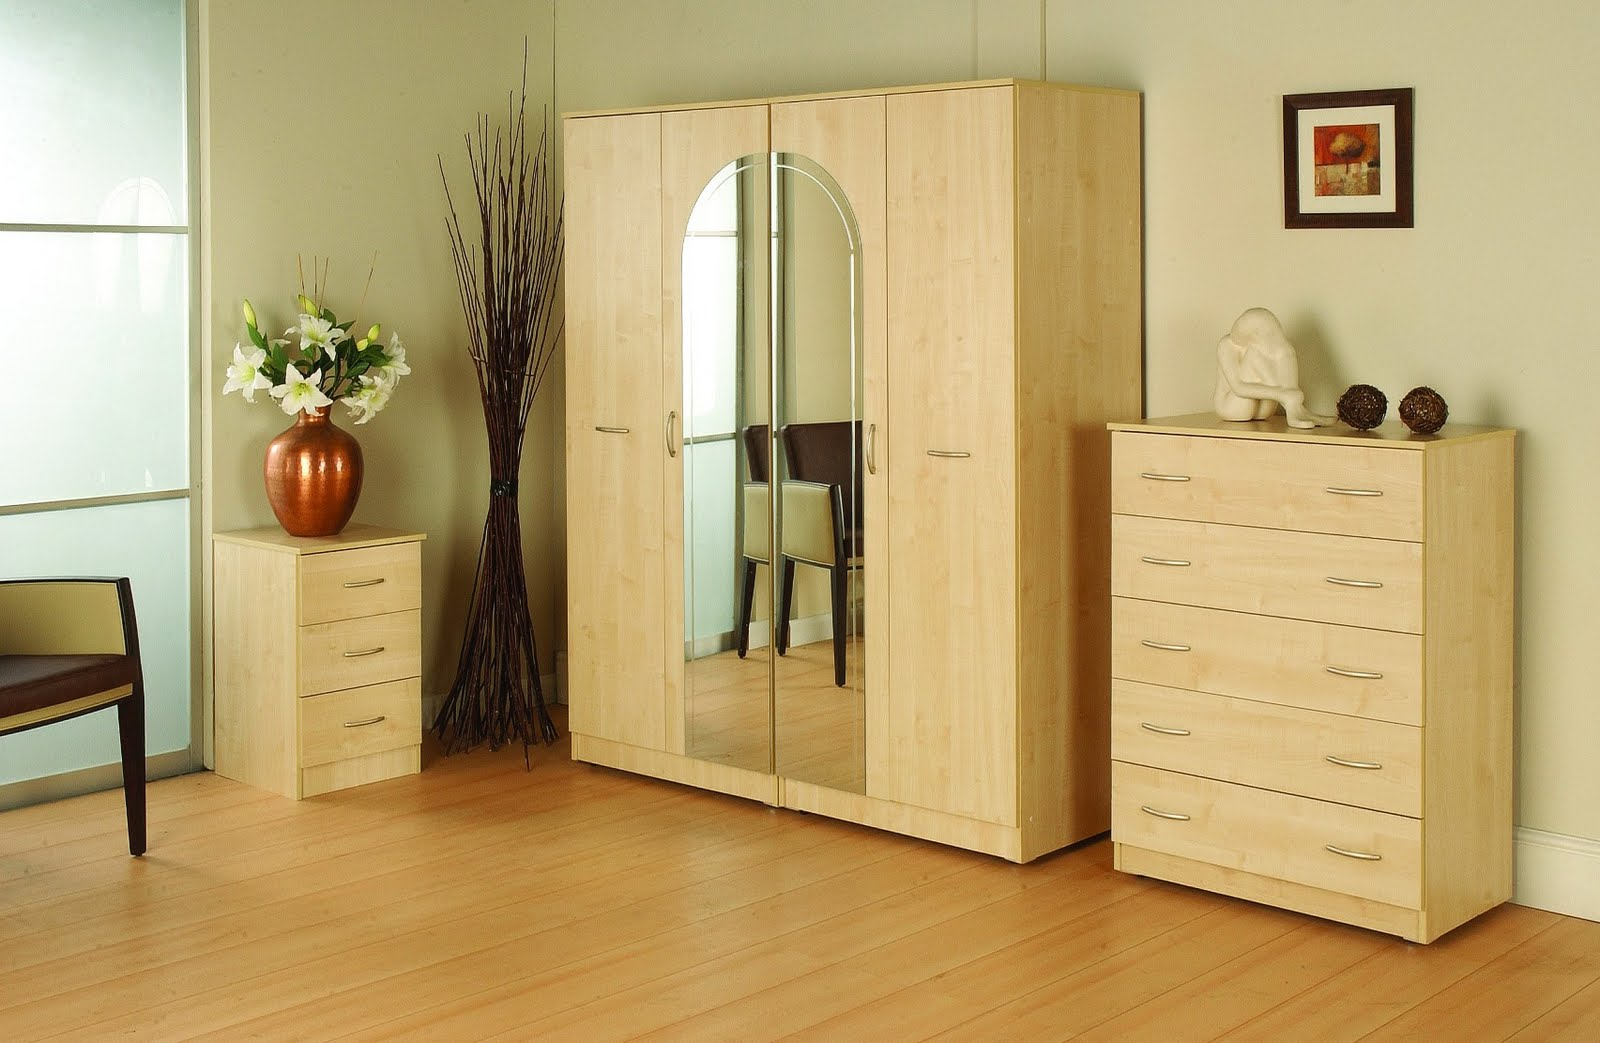 Home furnishing wardrobe designs Simple bedroom wardrobe designs